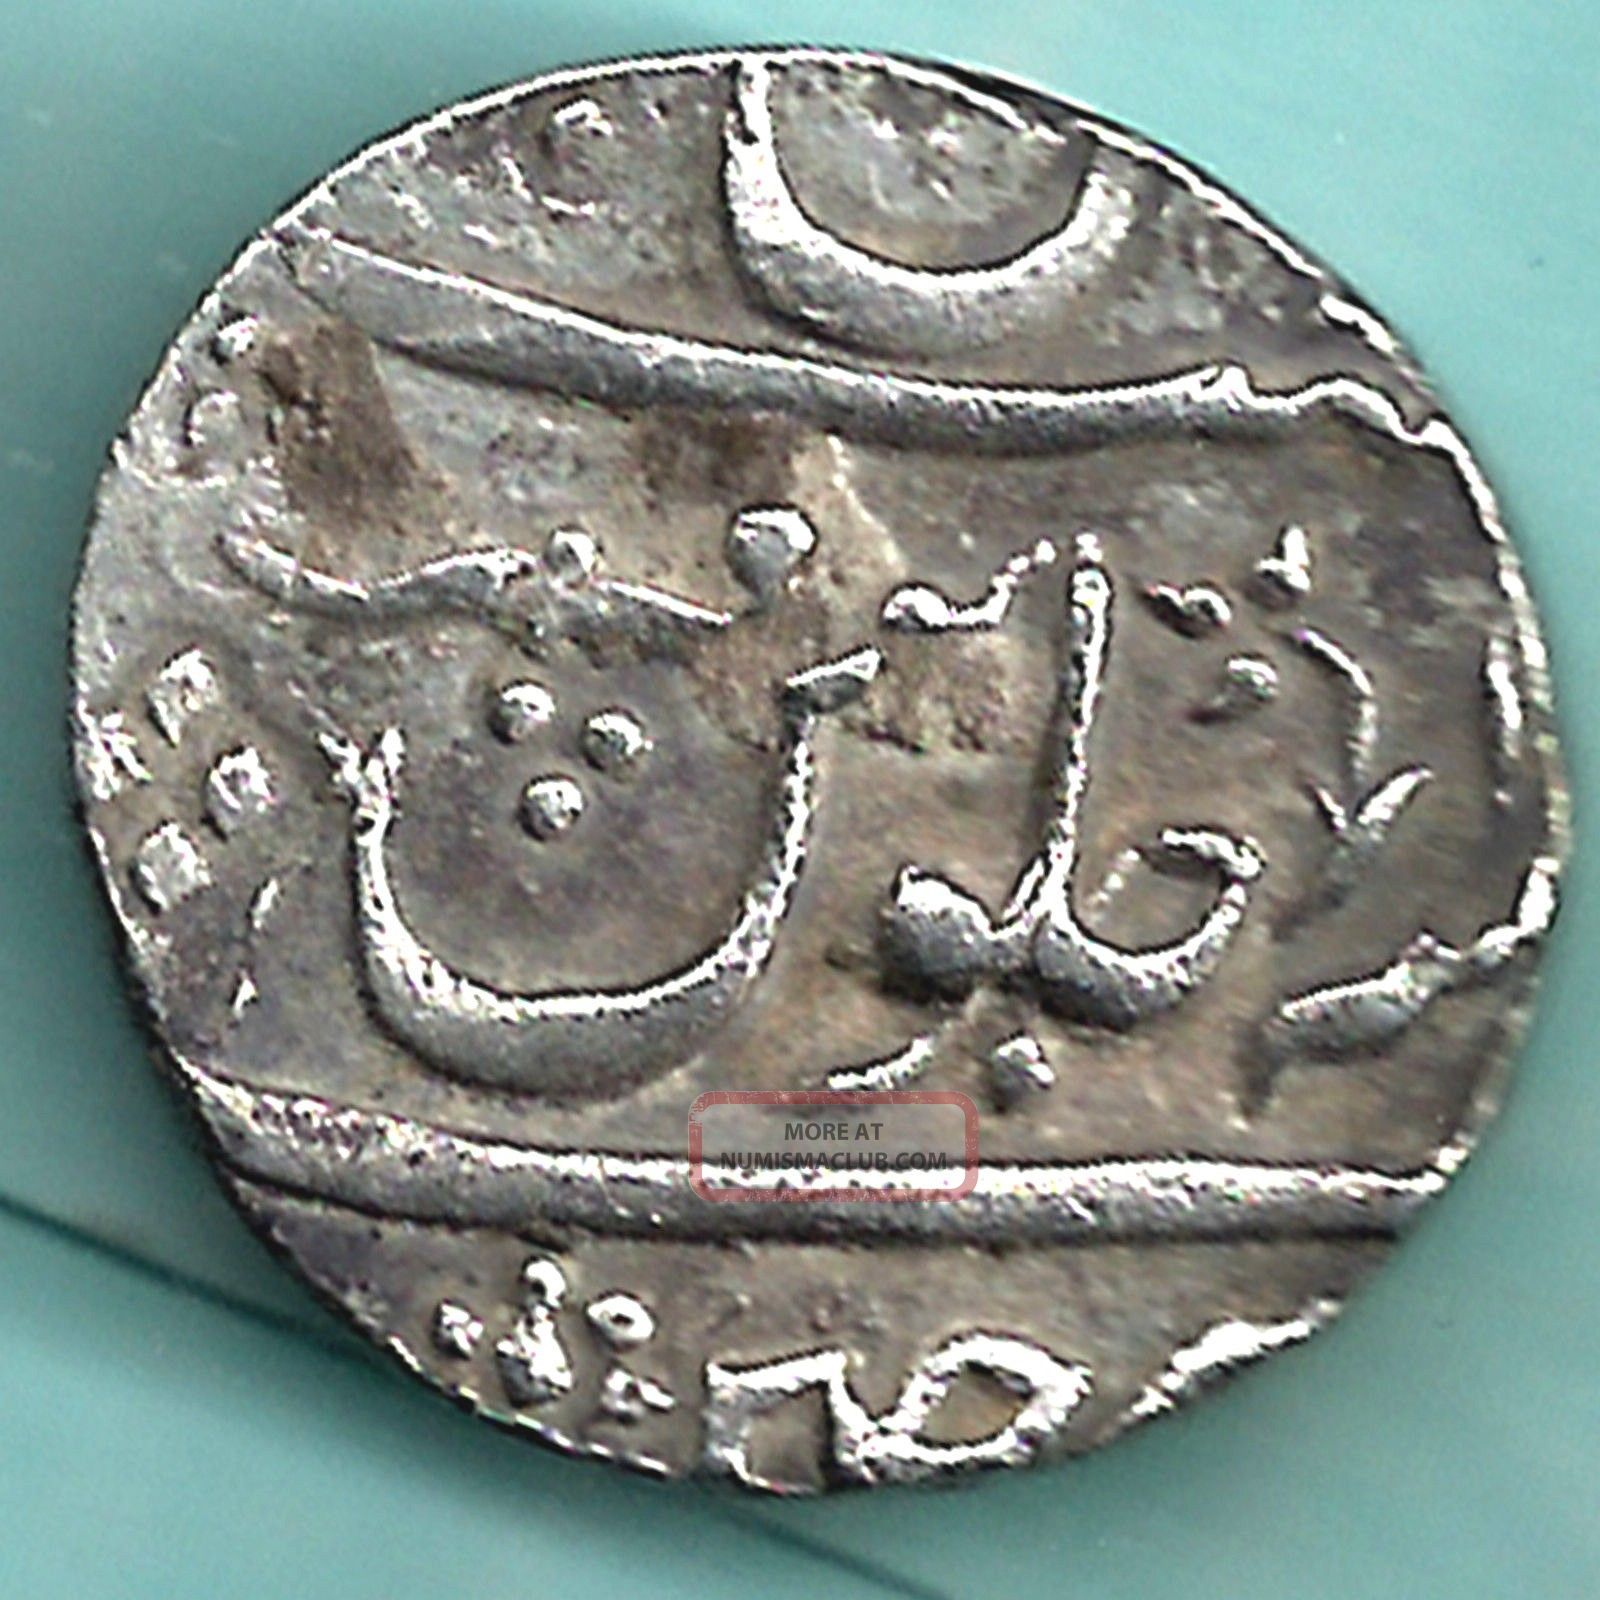 Gwalior State - One Rupee - With Sword - Rarest Silver Coin India photo